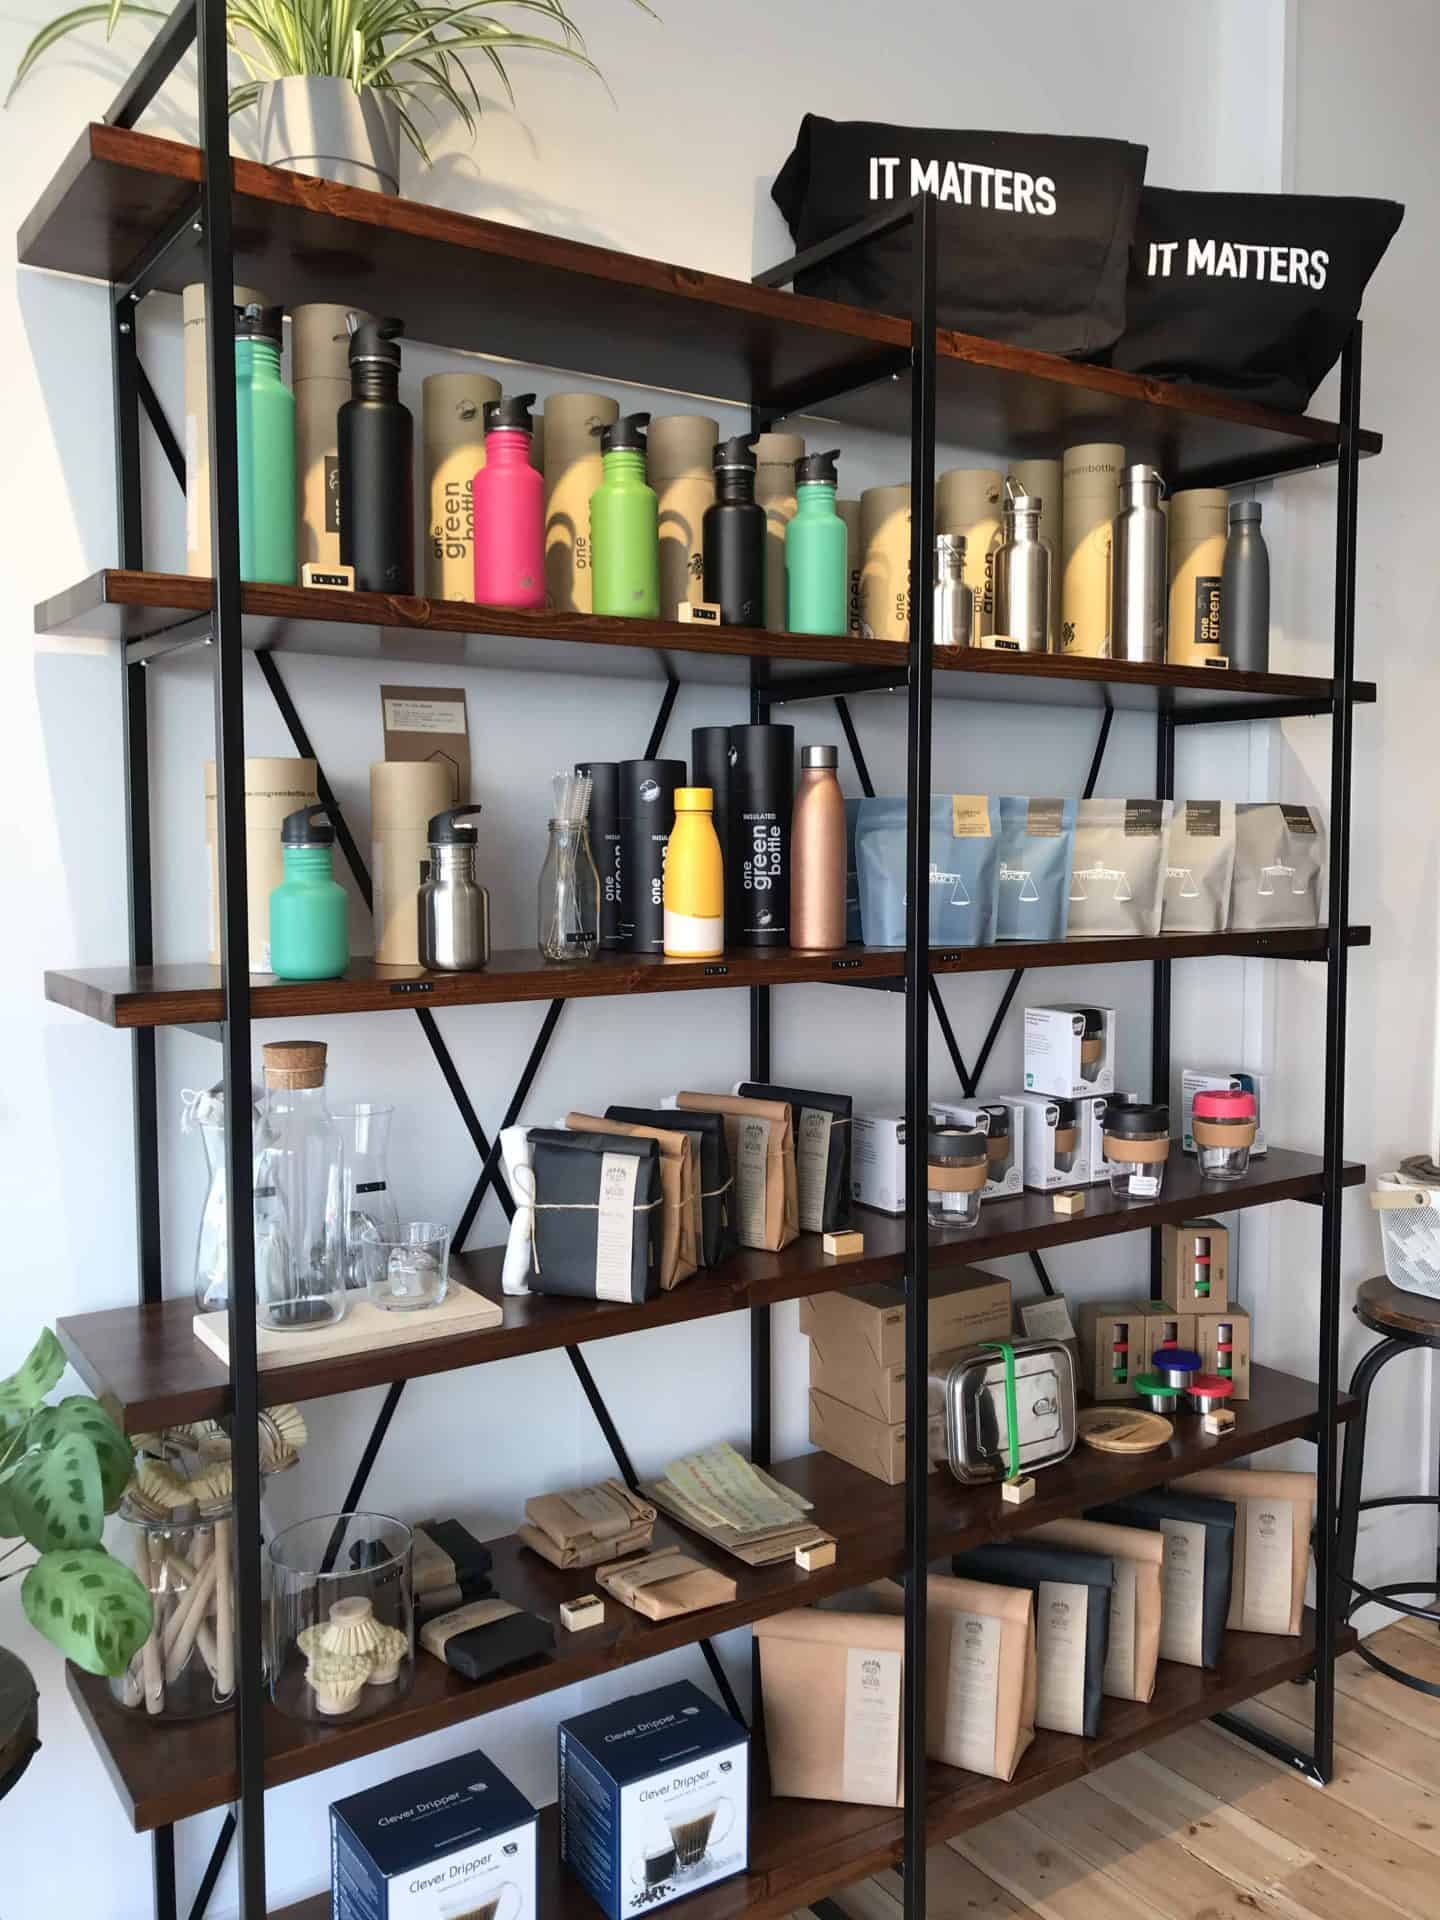 Reusable water bottles and bags, and other eco-friendly products on shelves at Barnes + Binns in Hove